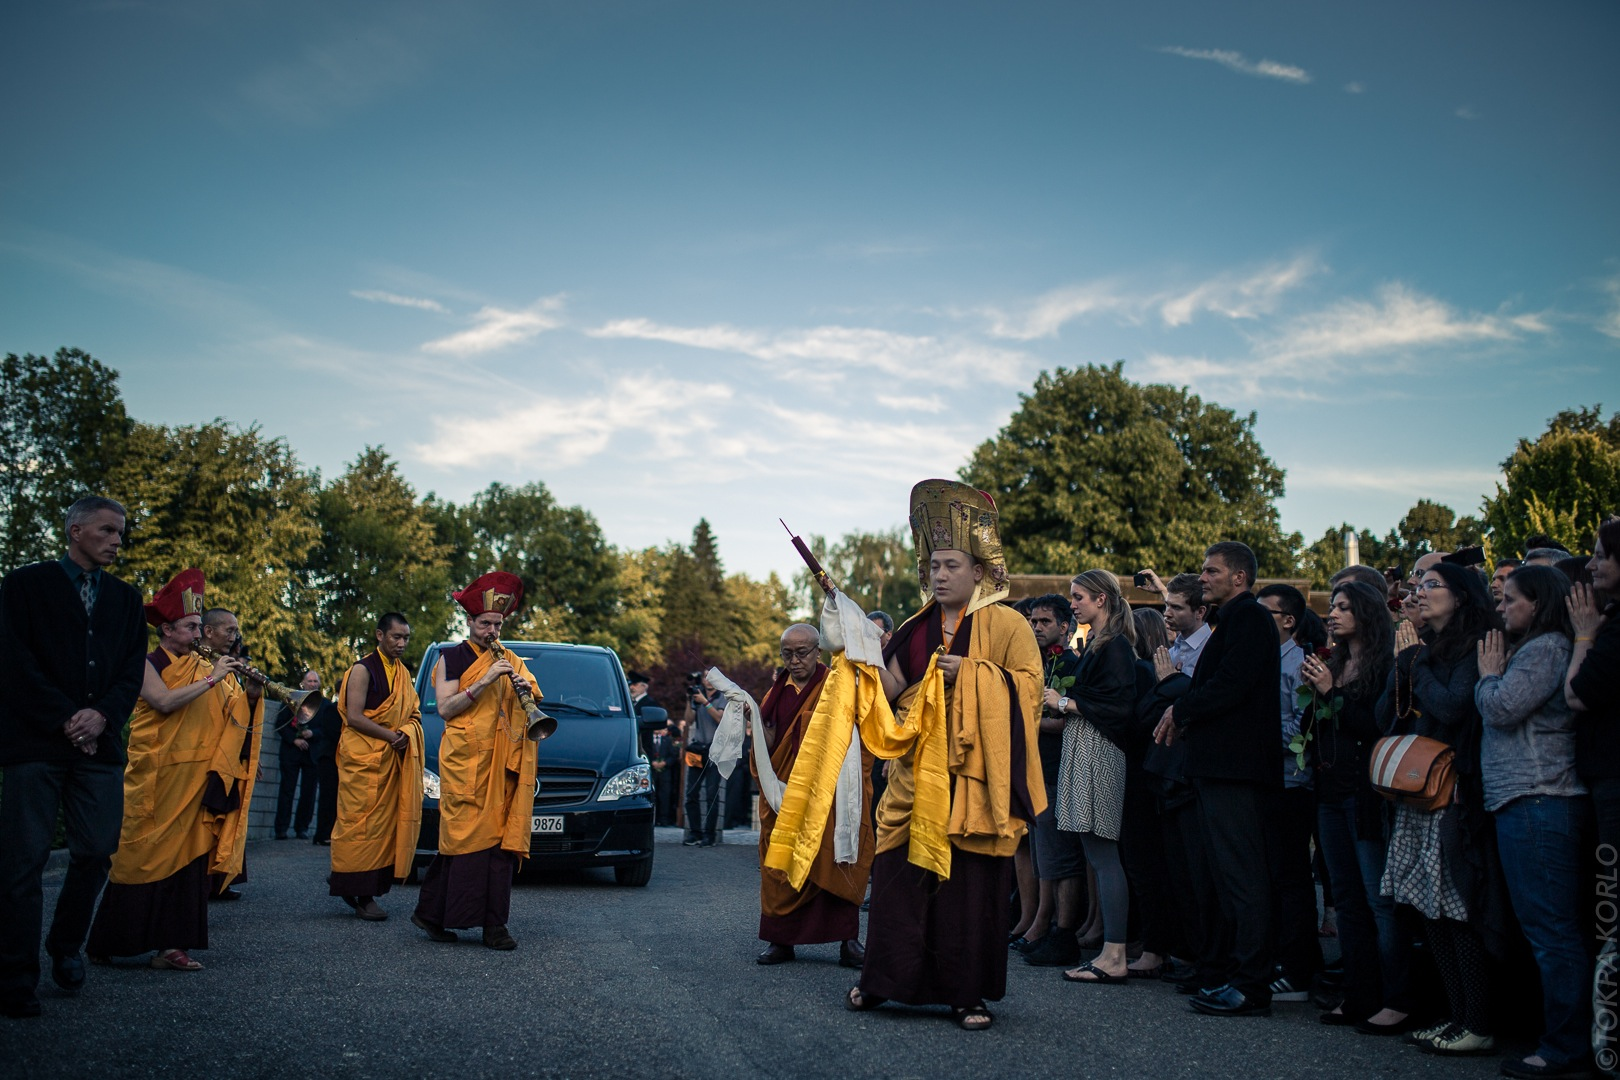 The 17th Karmapa Thaye Dorje escorts Shamar Rinpoche's body out of the funeral hall in Renchen, Germany - Photographer: Tokpa Korlo